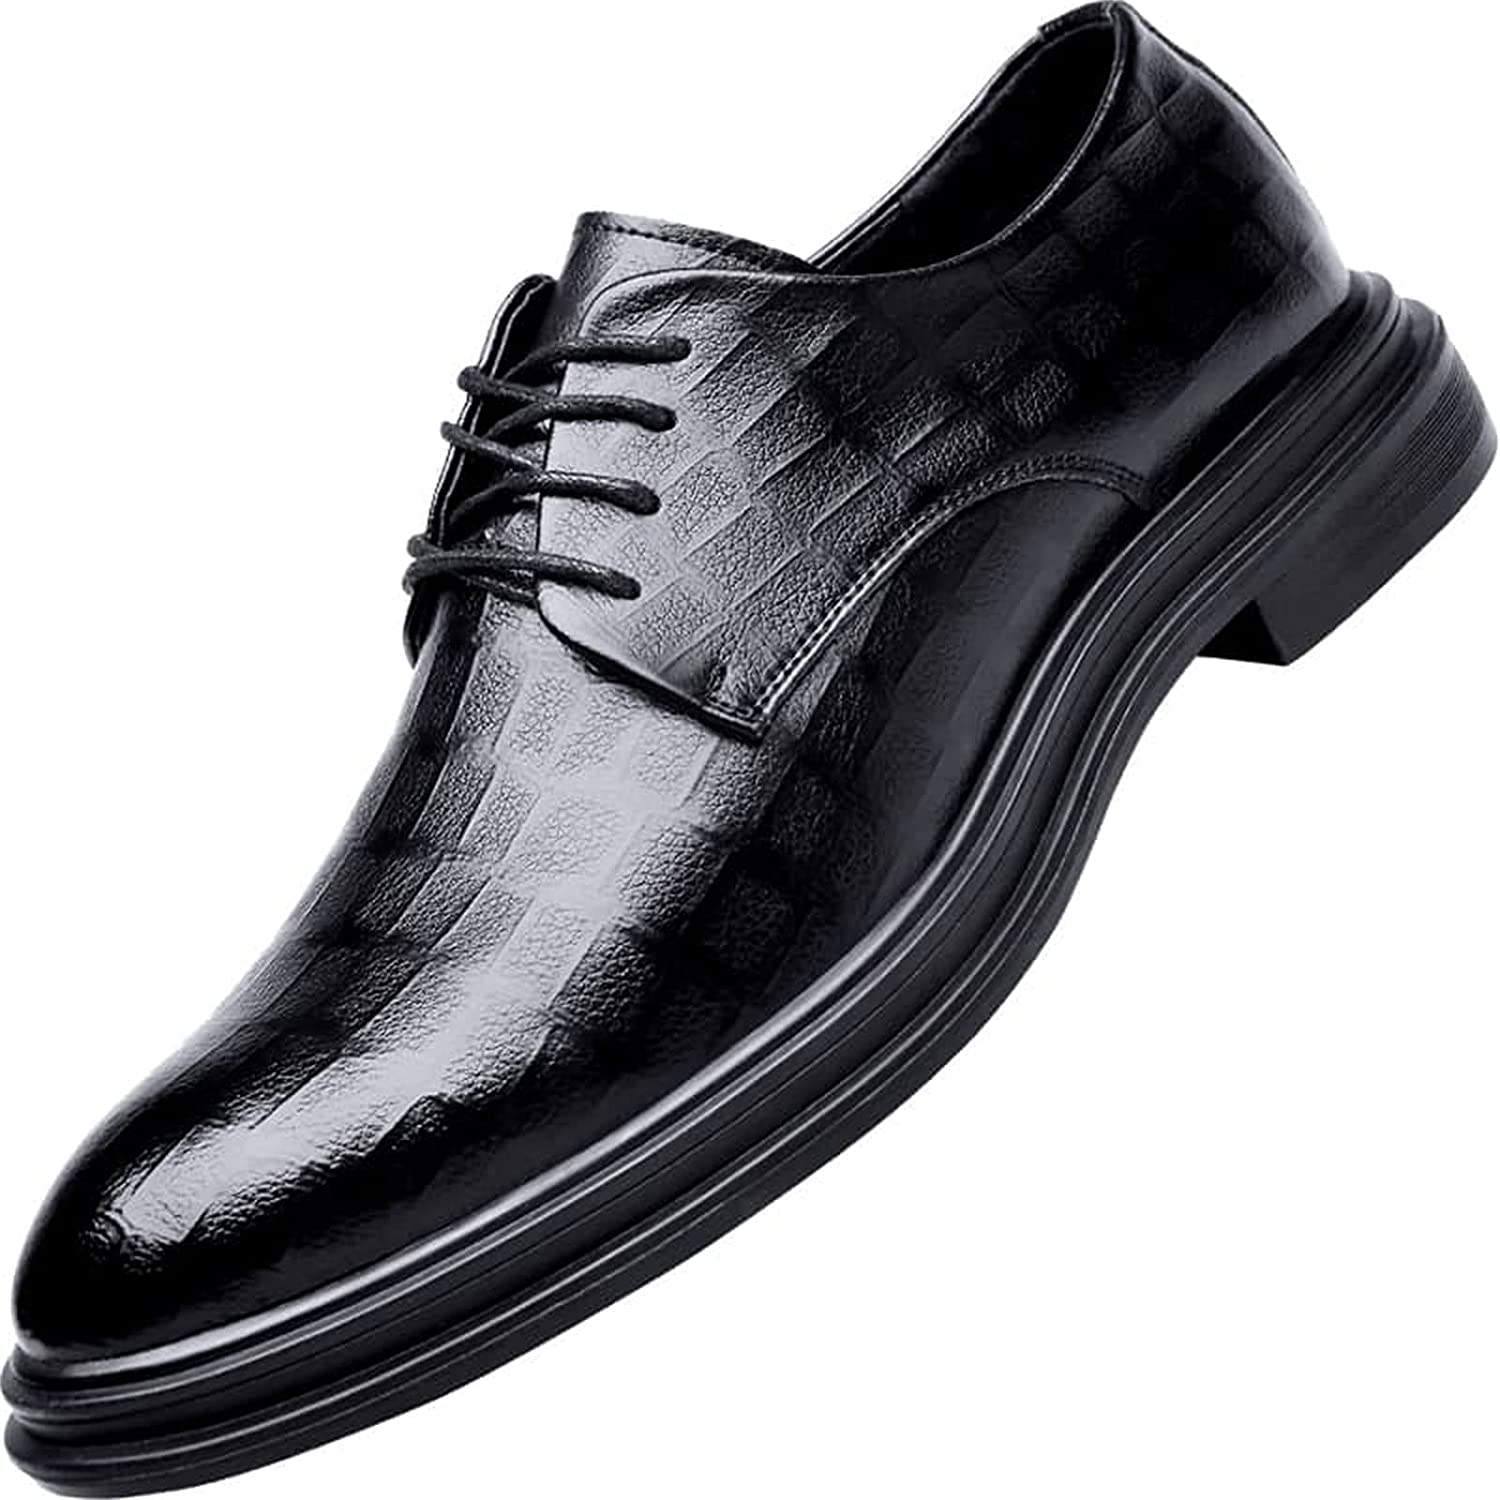 Juyouqian Men's Oxford Shoes Dress Shoe Casual Formal Classic Leather Oxfords Lace-up